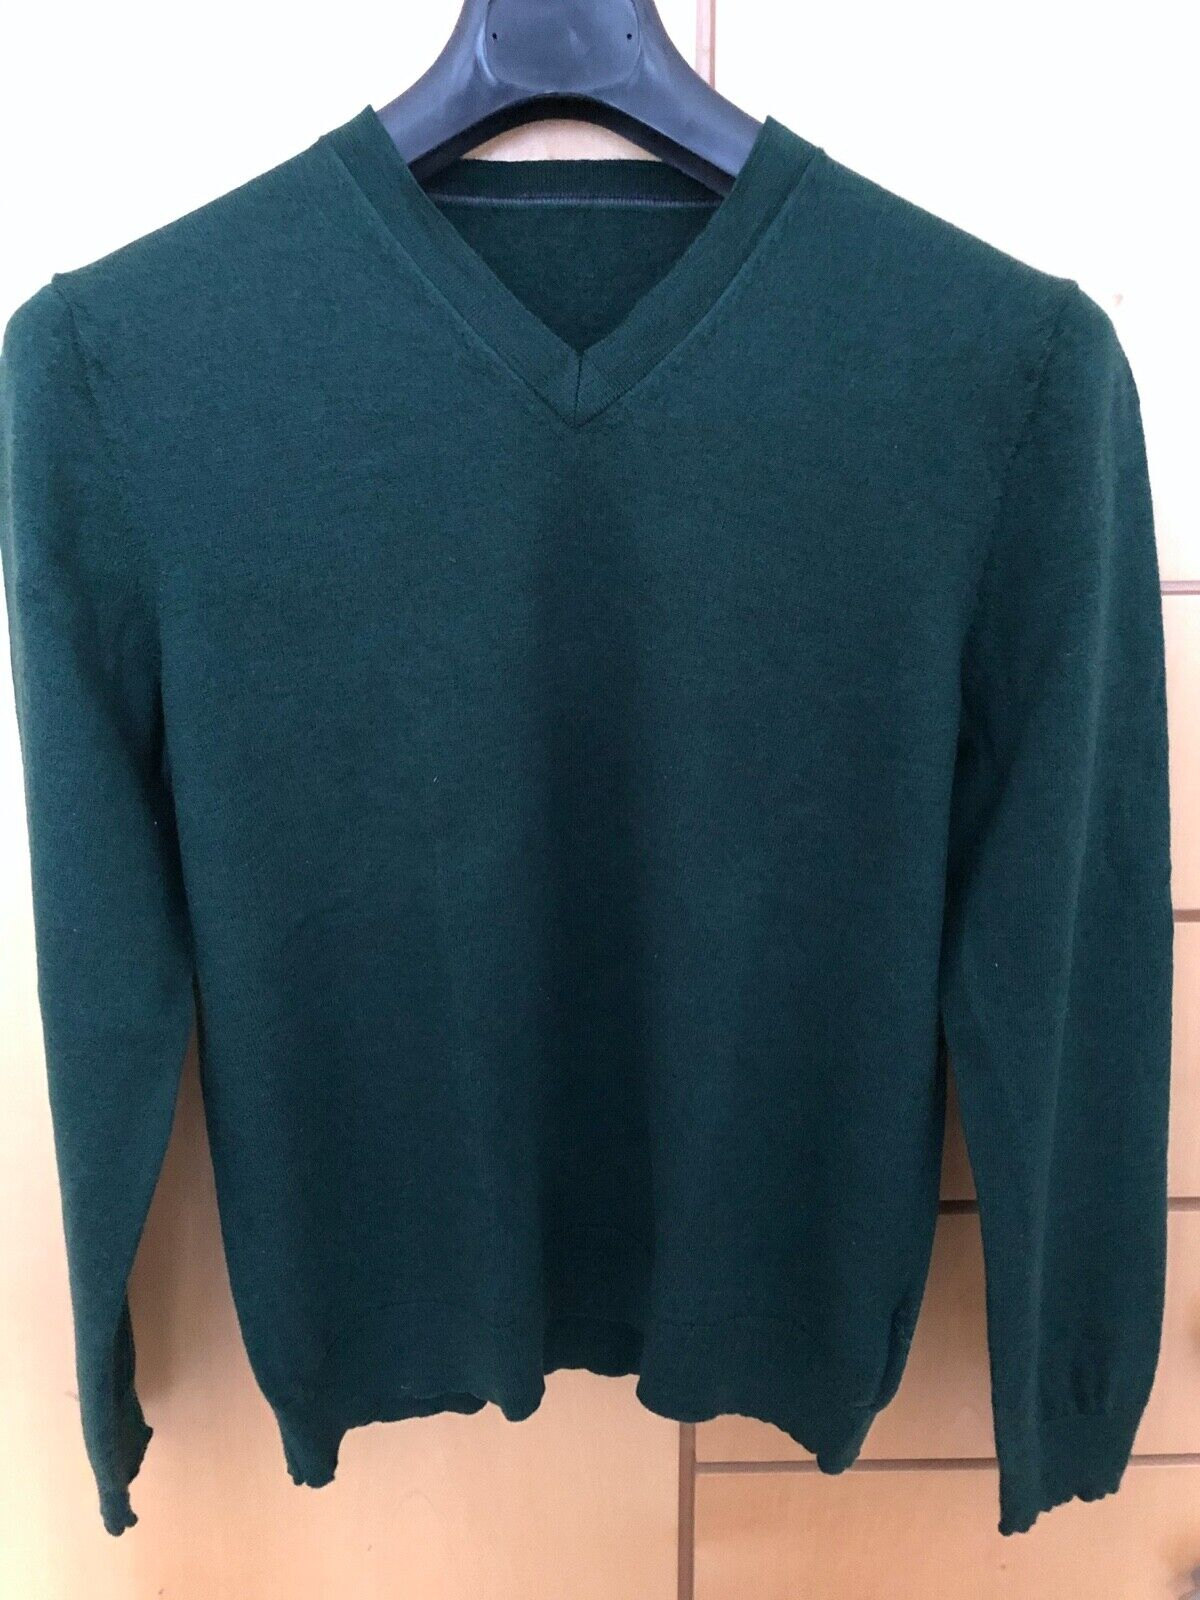 Pull col v gap - taille s